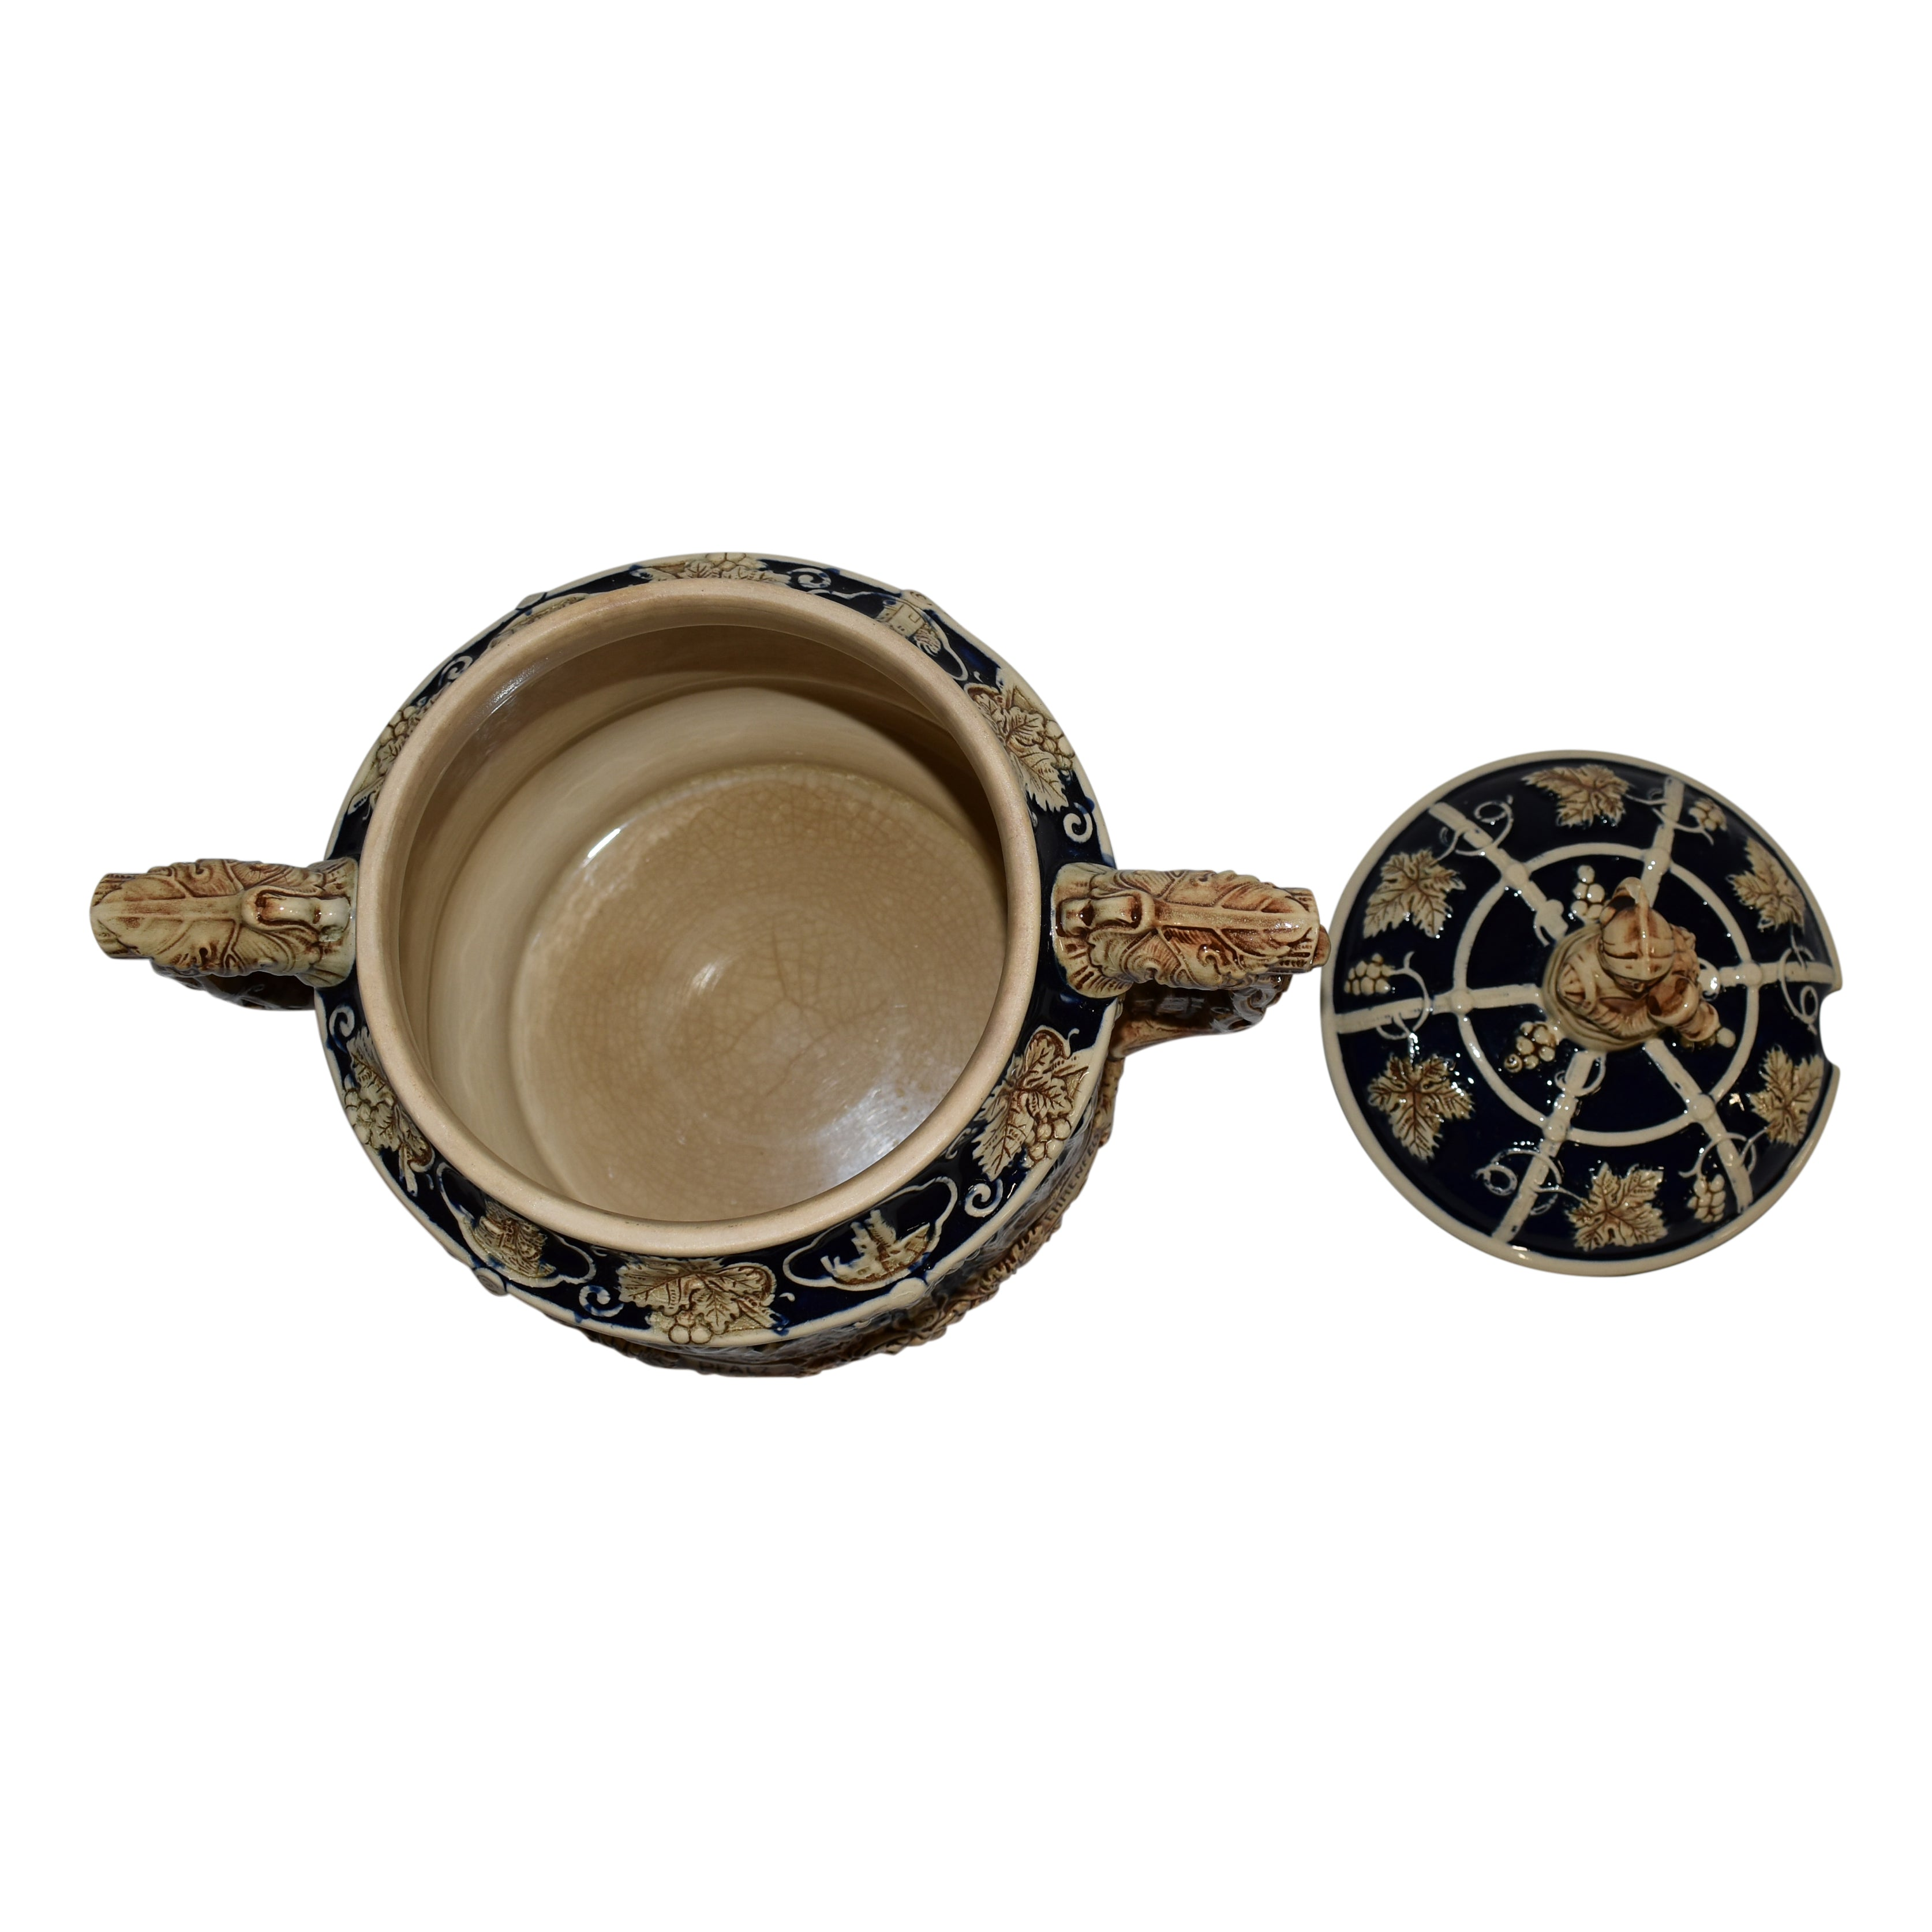 German Gluhwein Bowl with Lid and Cup Set